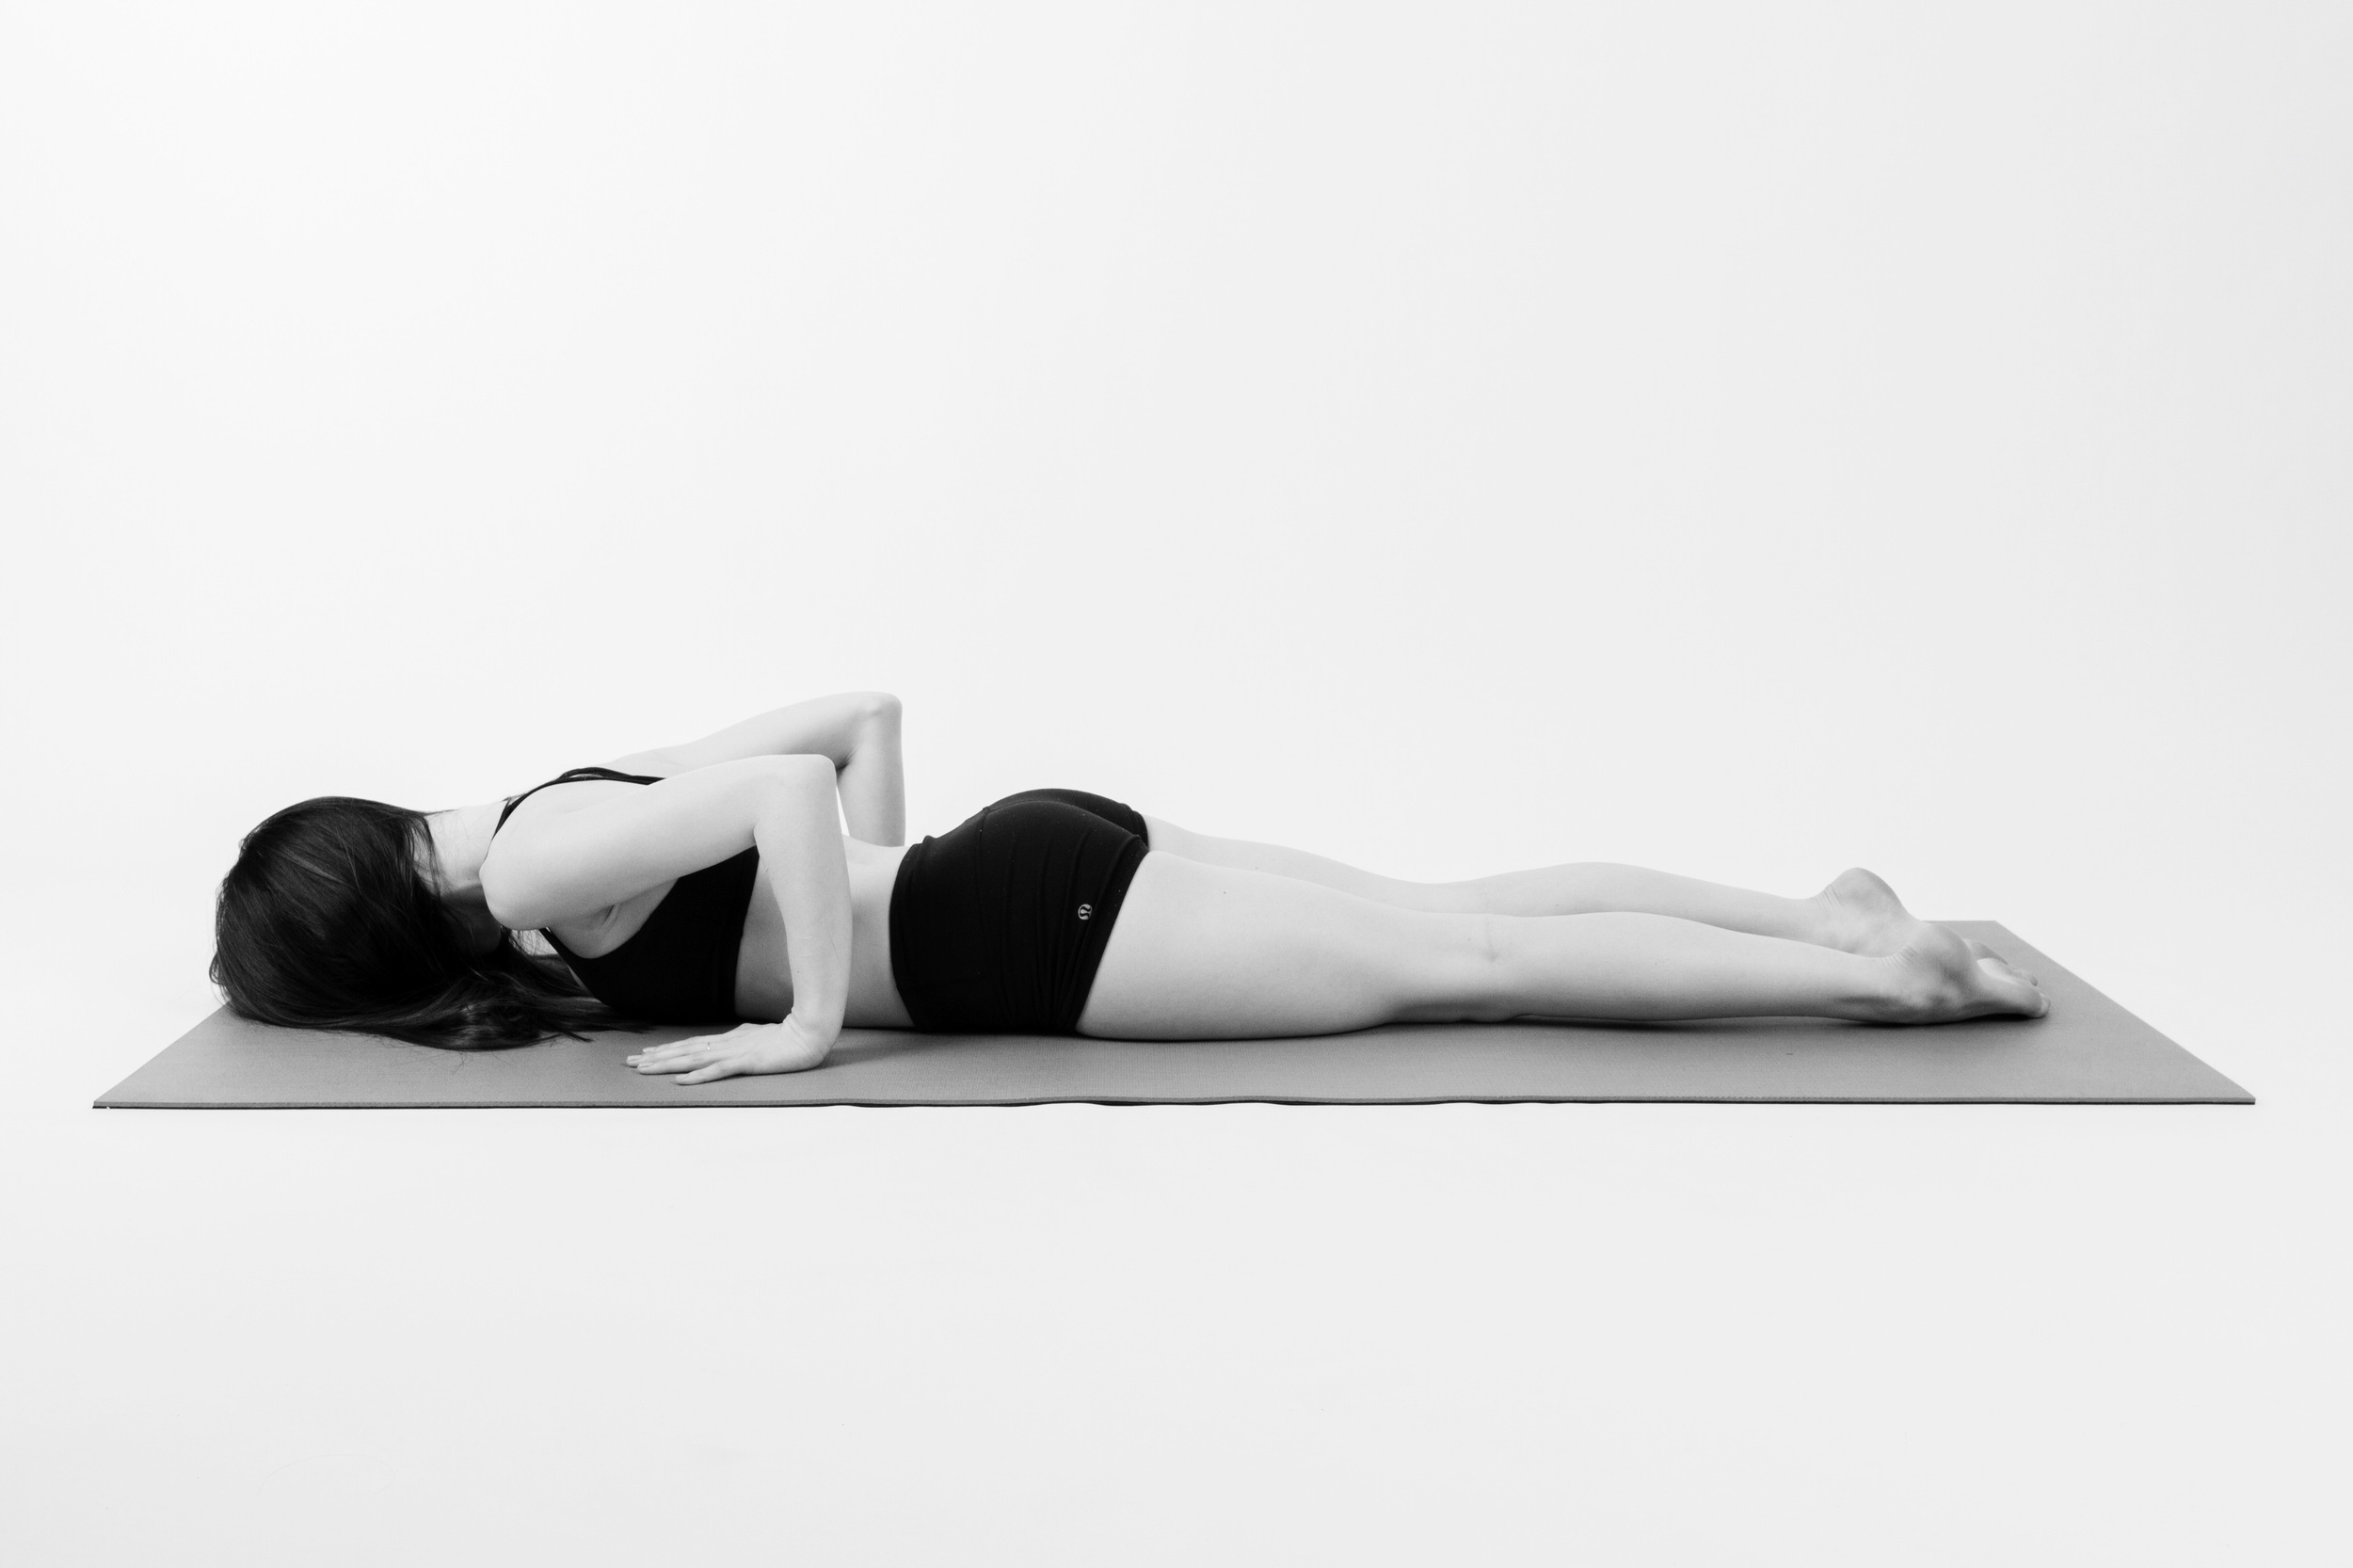 TRANSITION TO BELLY        Slowly exhale and lower back down to your belly, tuck your chin.